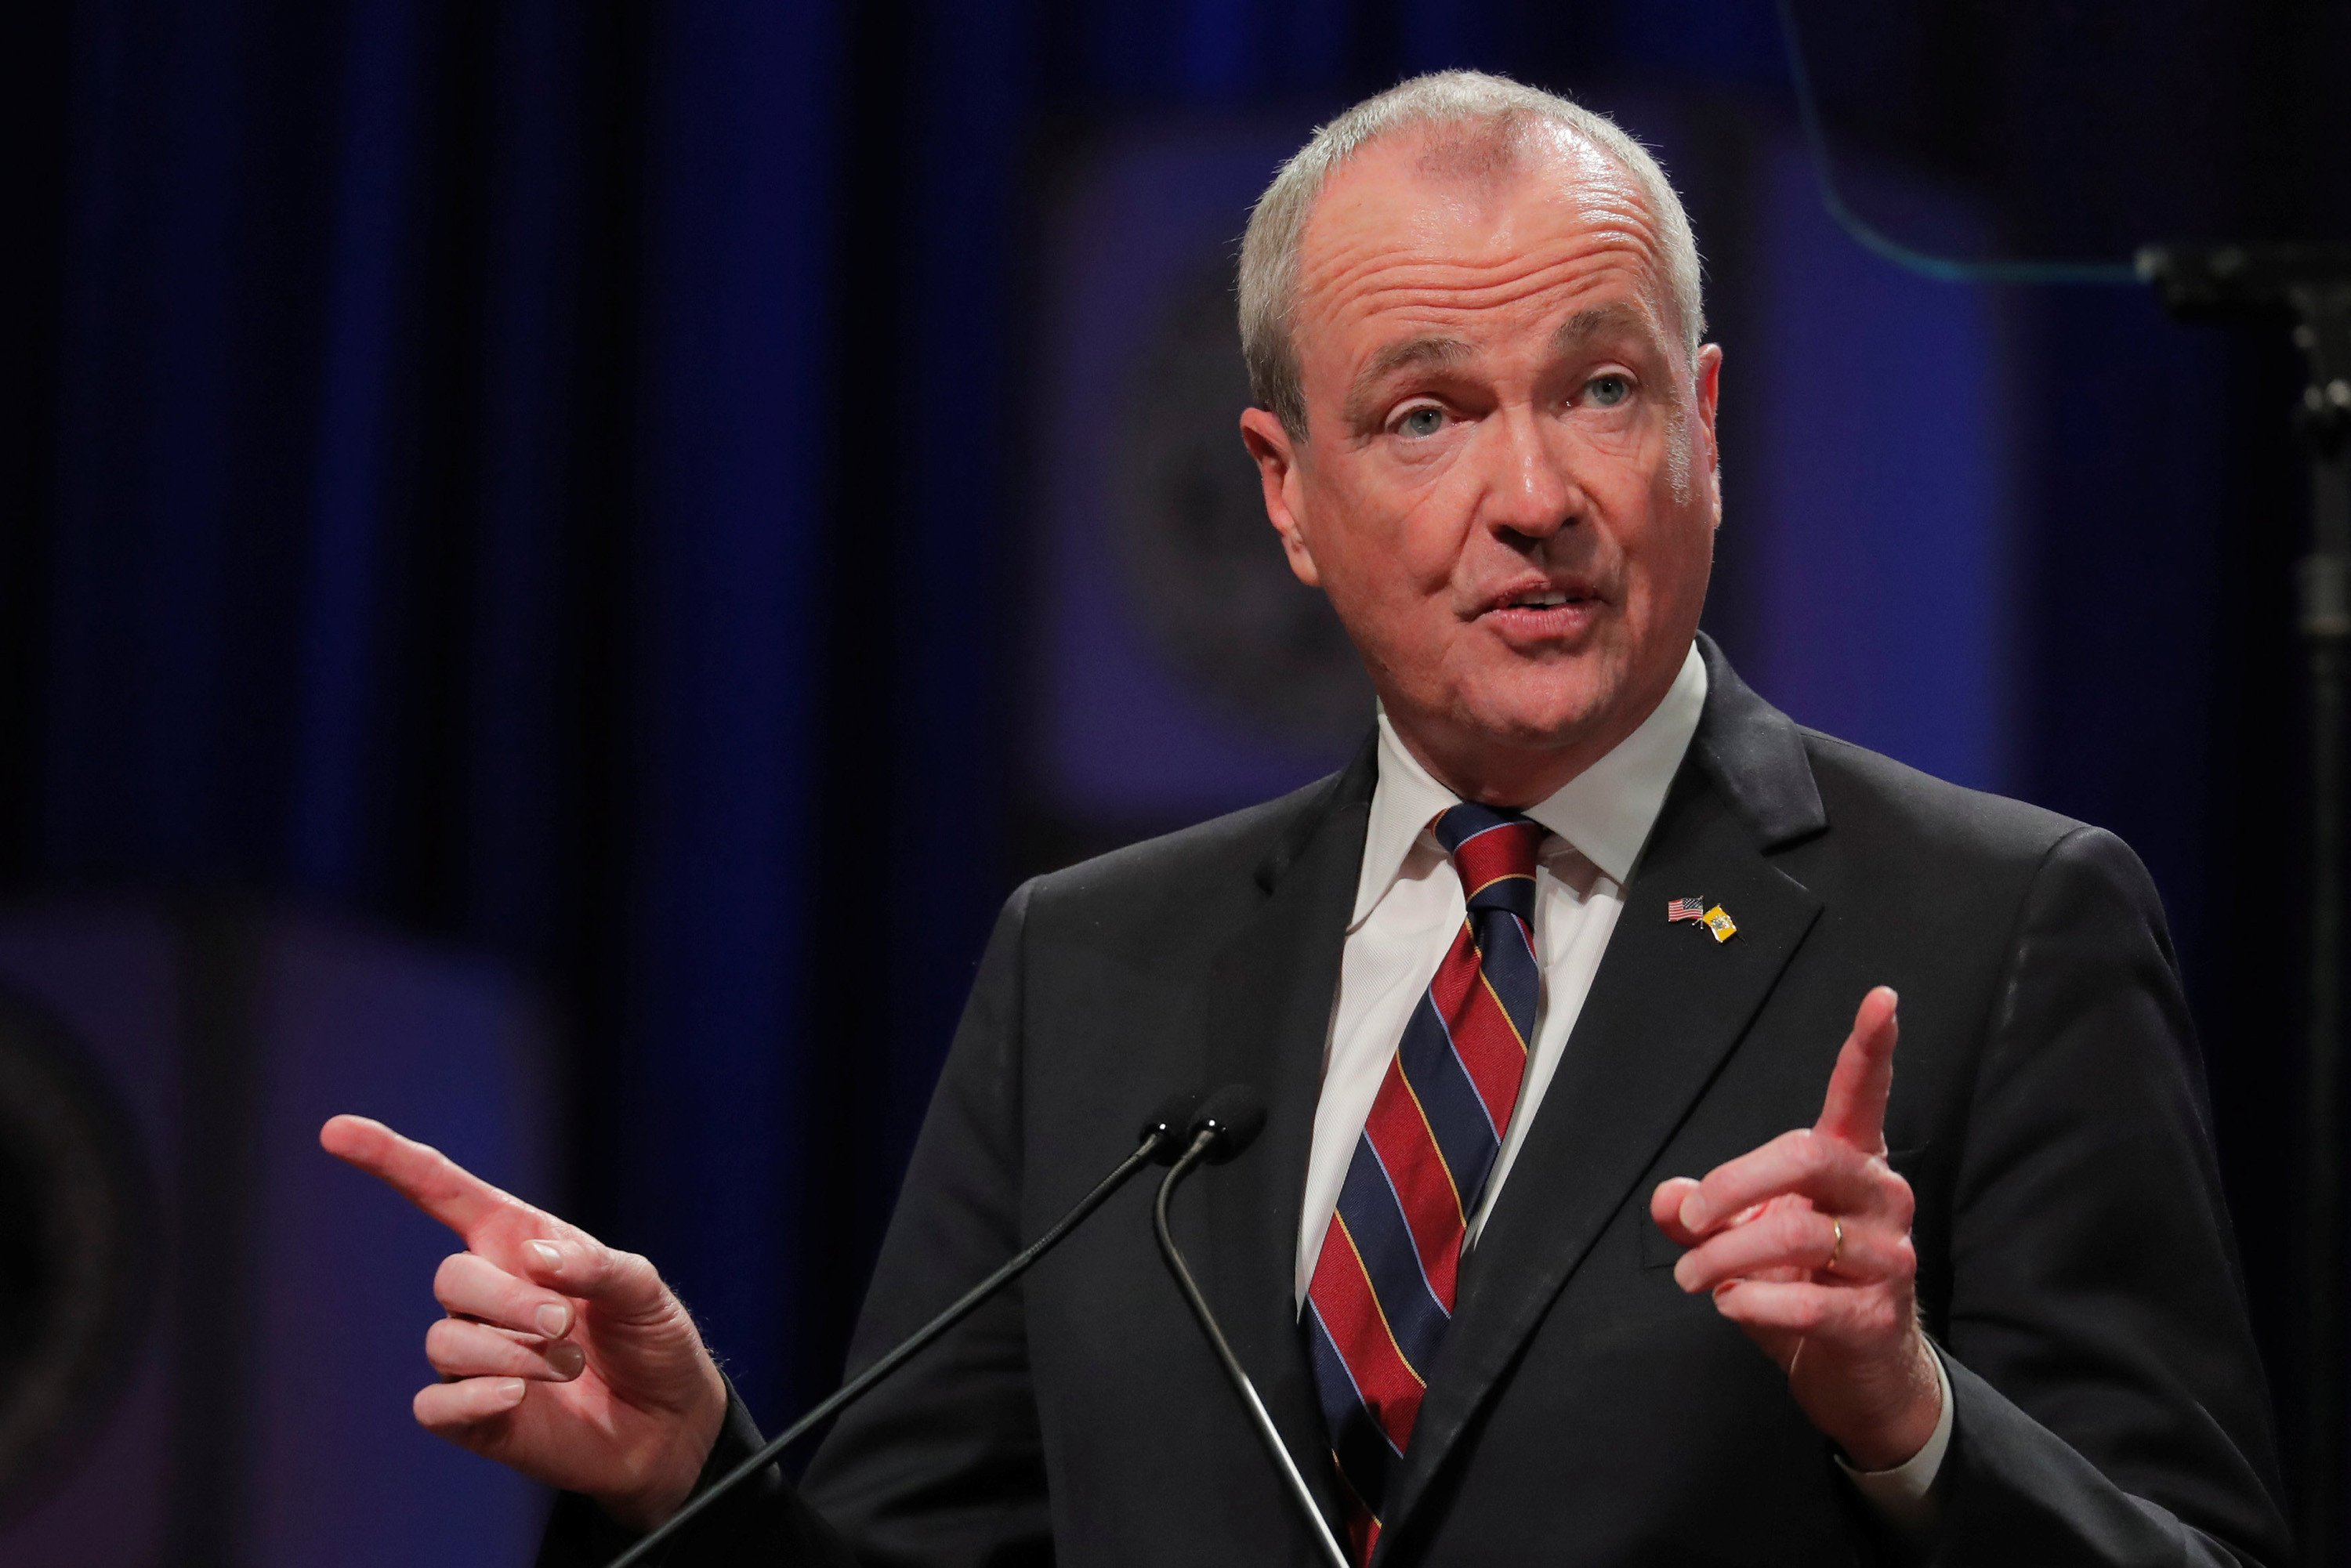 New Jersey Governor Phil Murphy is behind north New Jersey casino expansion